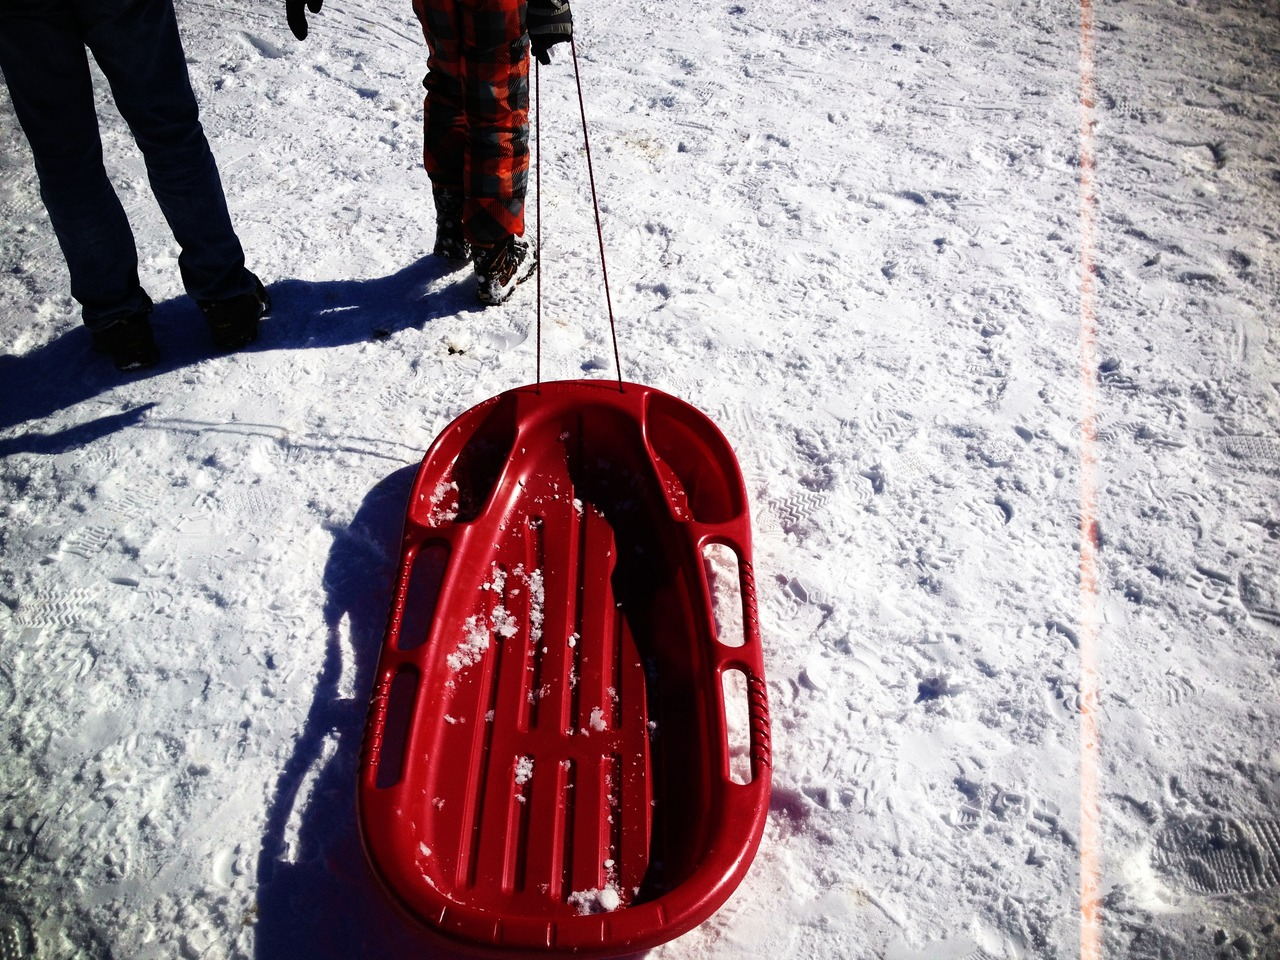 Red Sleigh - #peppersearching #pepper #photos #red #sleigh #snow